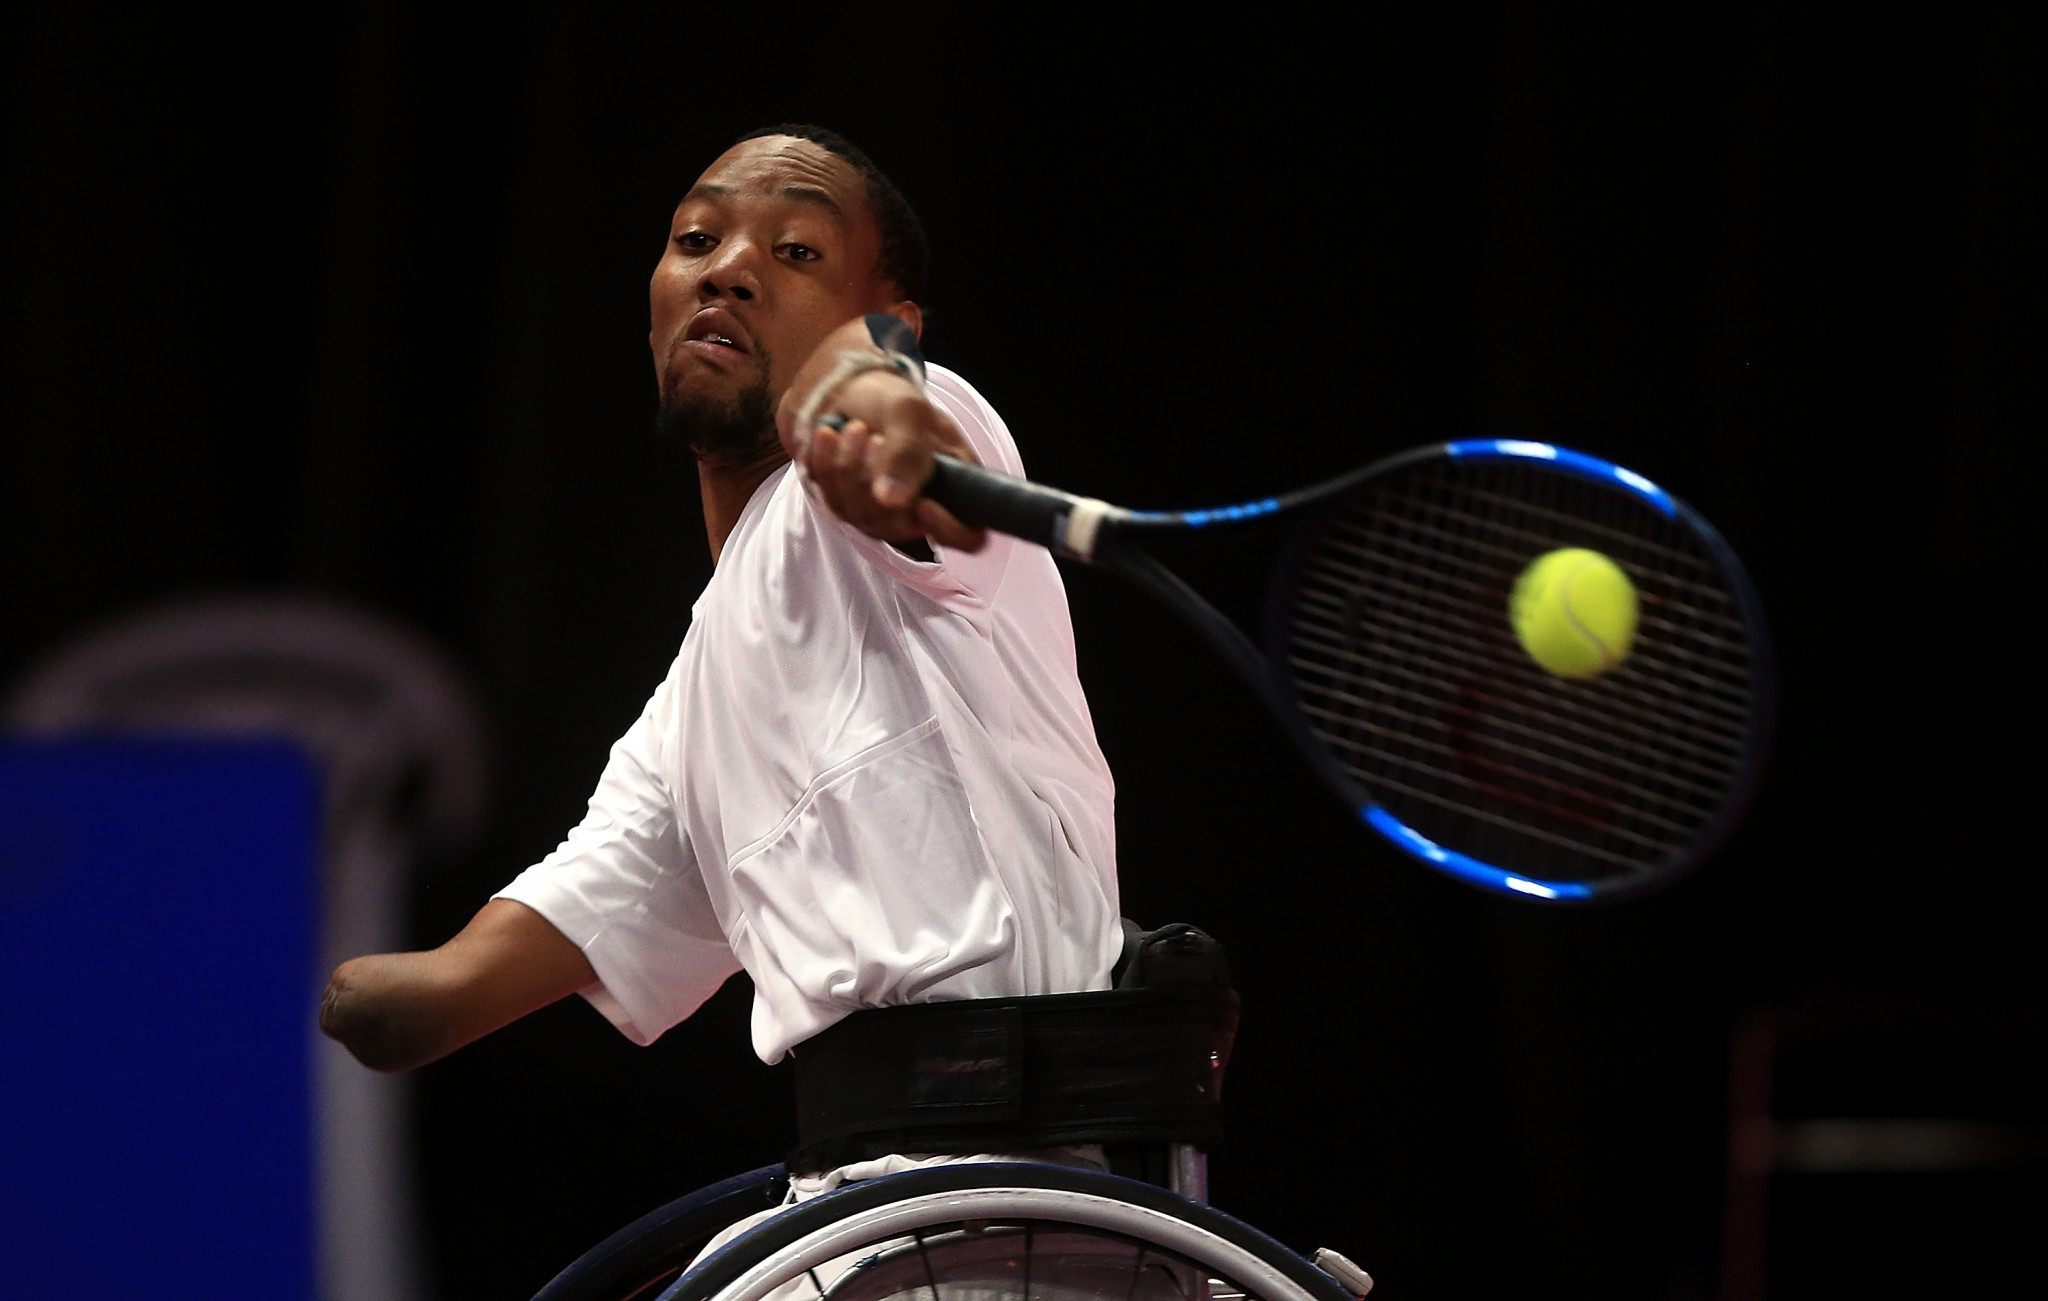 Lucas Sithole of South Africa has earned two Grand Slam victories in his career ©Getty Images